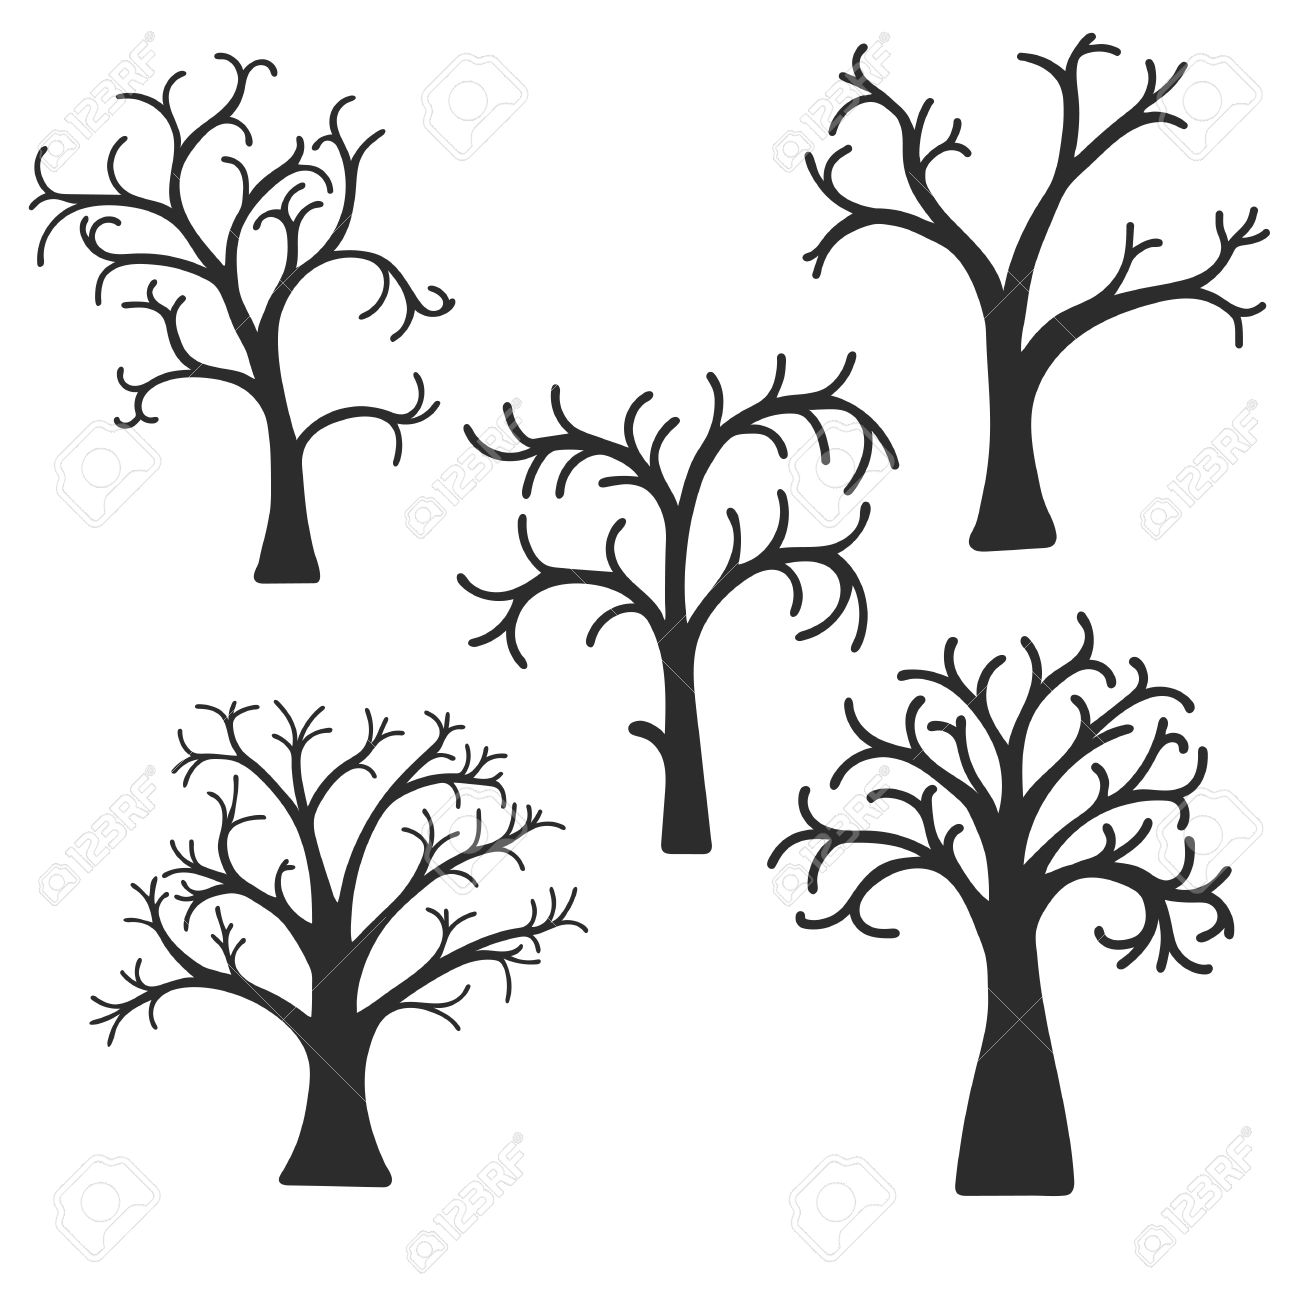 Silhouette Of Deciduous Trees Without Leaves, Vector Illustration.